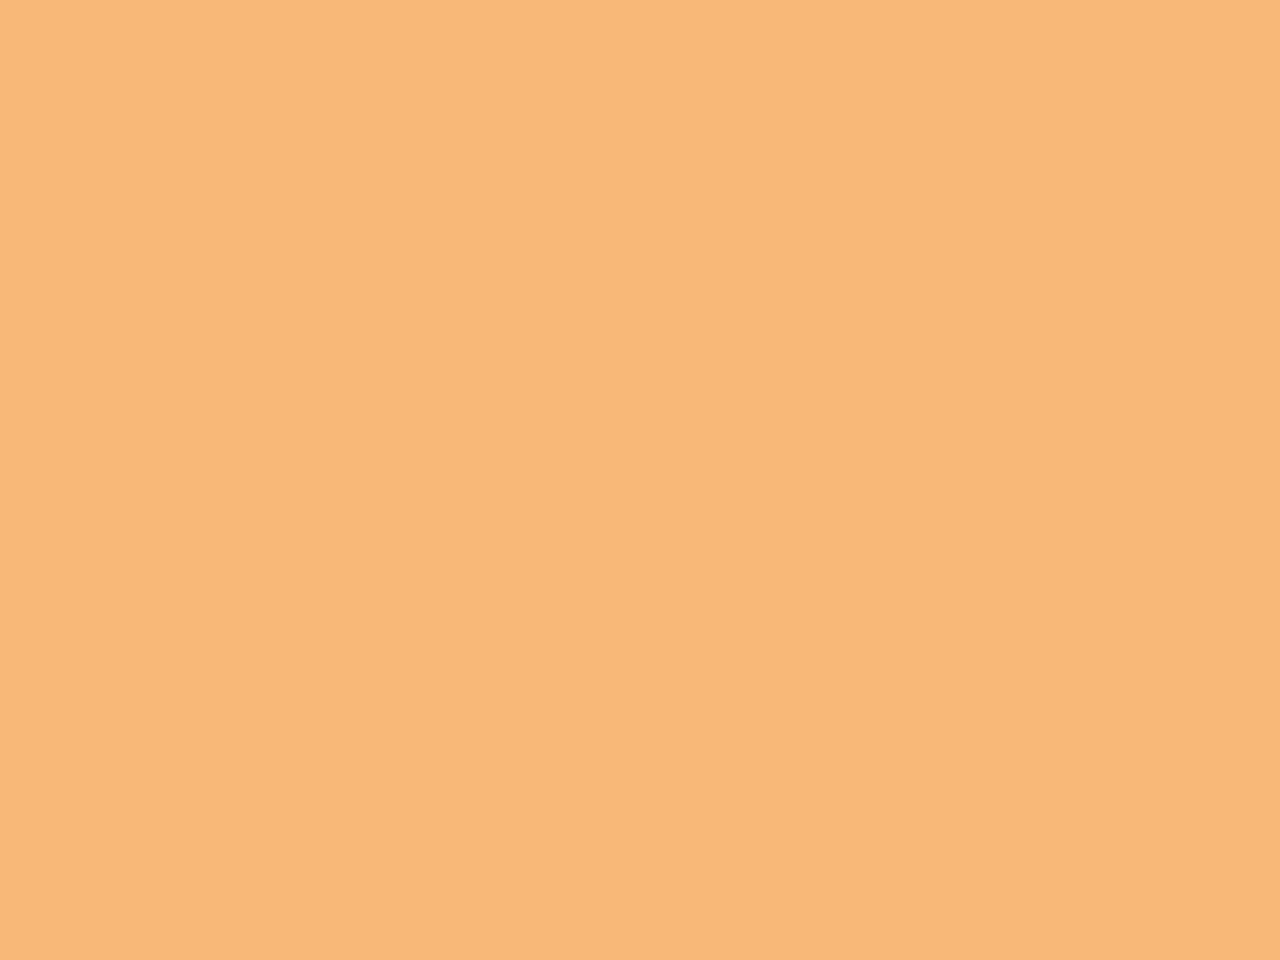 1280x960 Mellow Apricot Solid Color Background